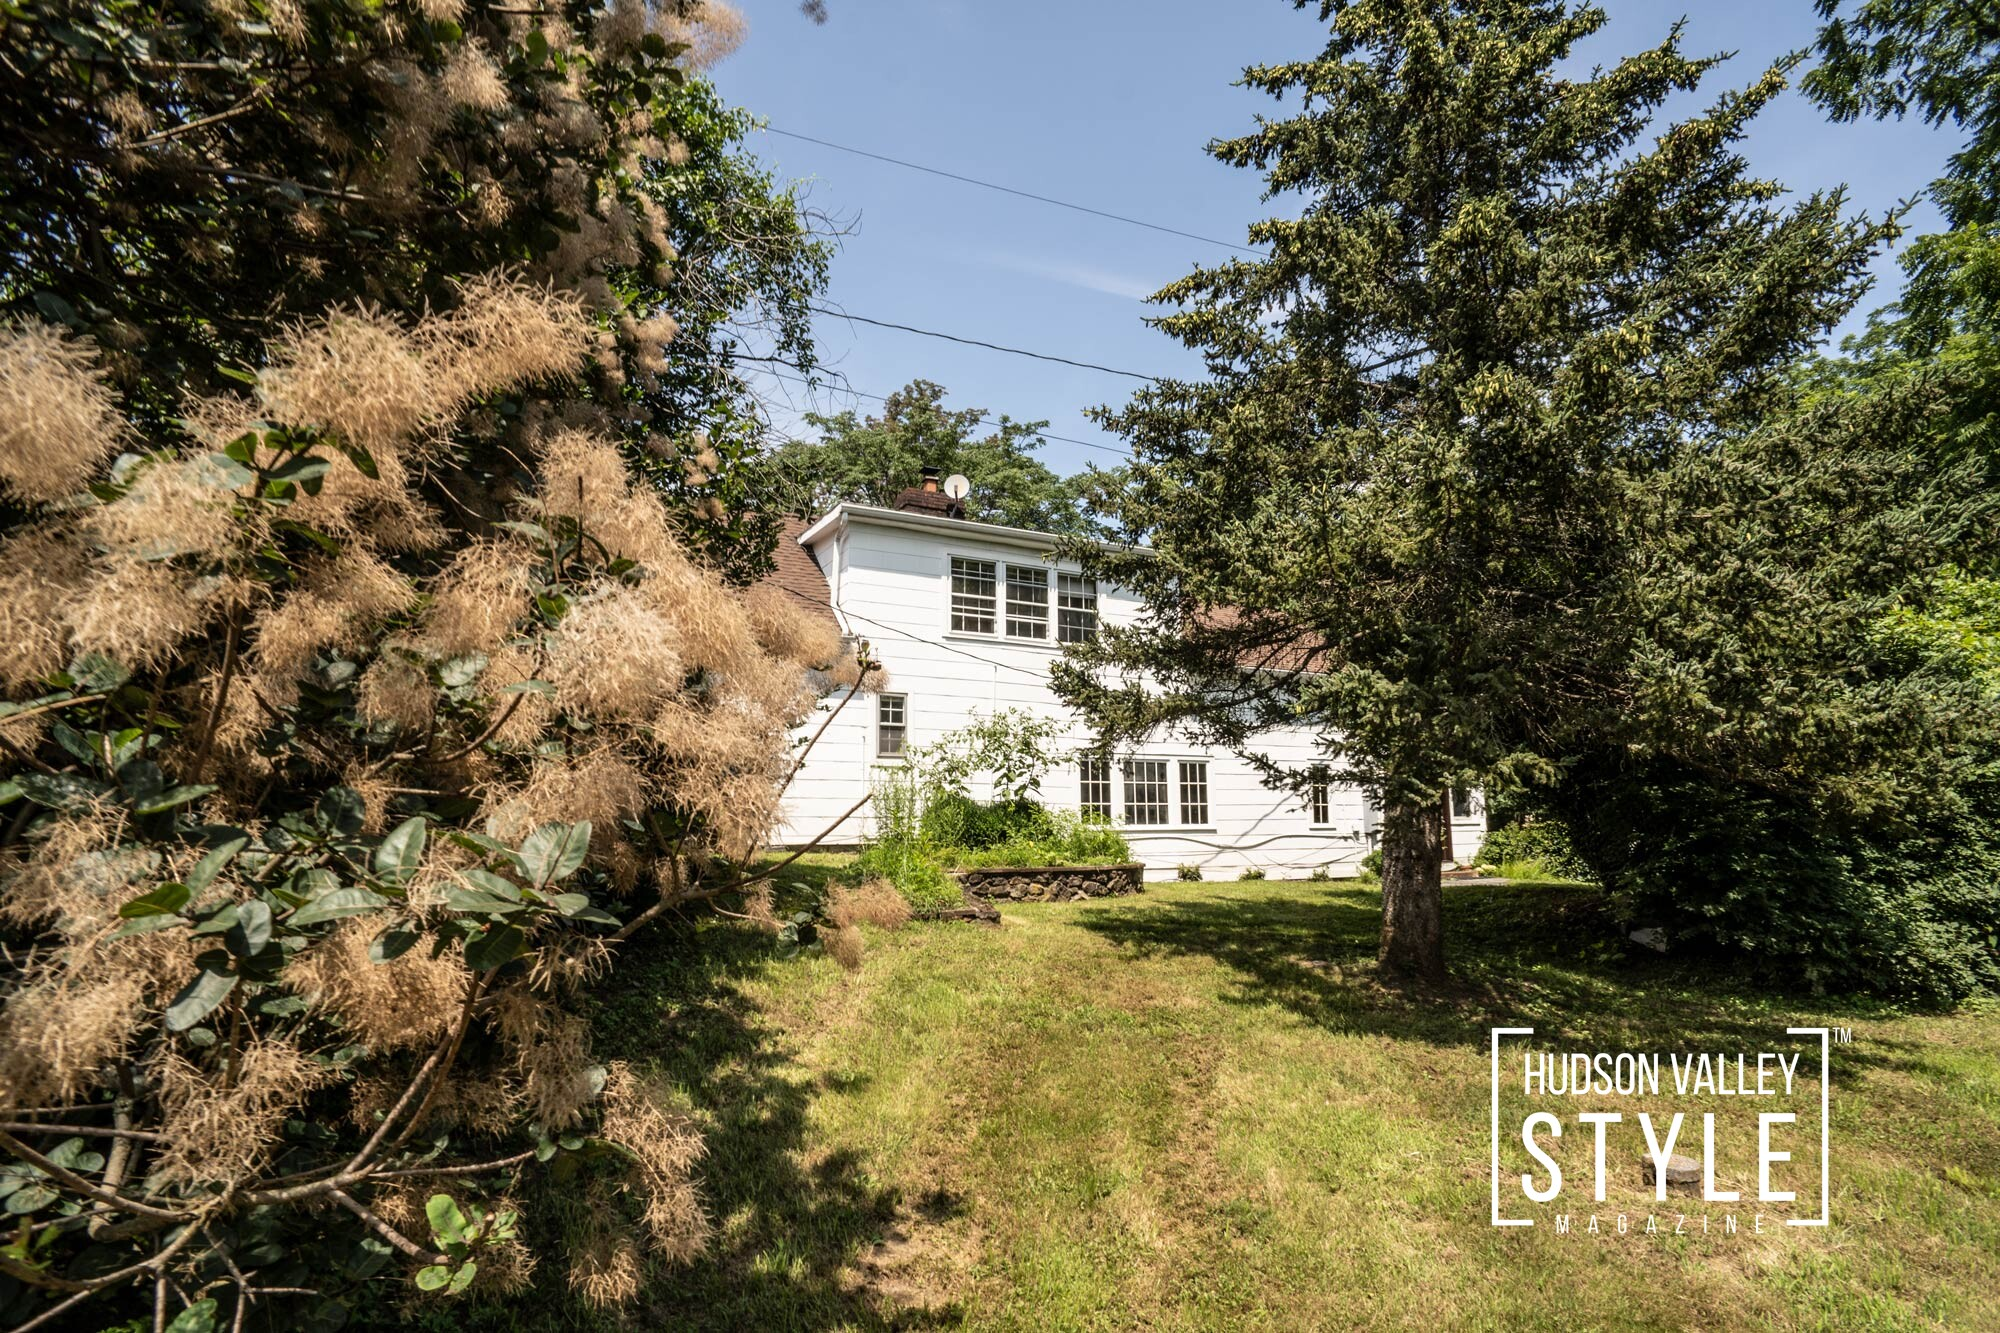 Farmhouse in Garrison, NY – Real Estate Photography Project by Duncan Avenue Studios – Best Real Estate Photographer in Hudson Valley, Catskills, and Westchester, New York